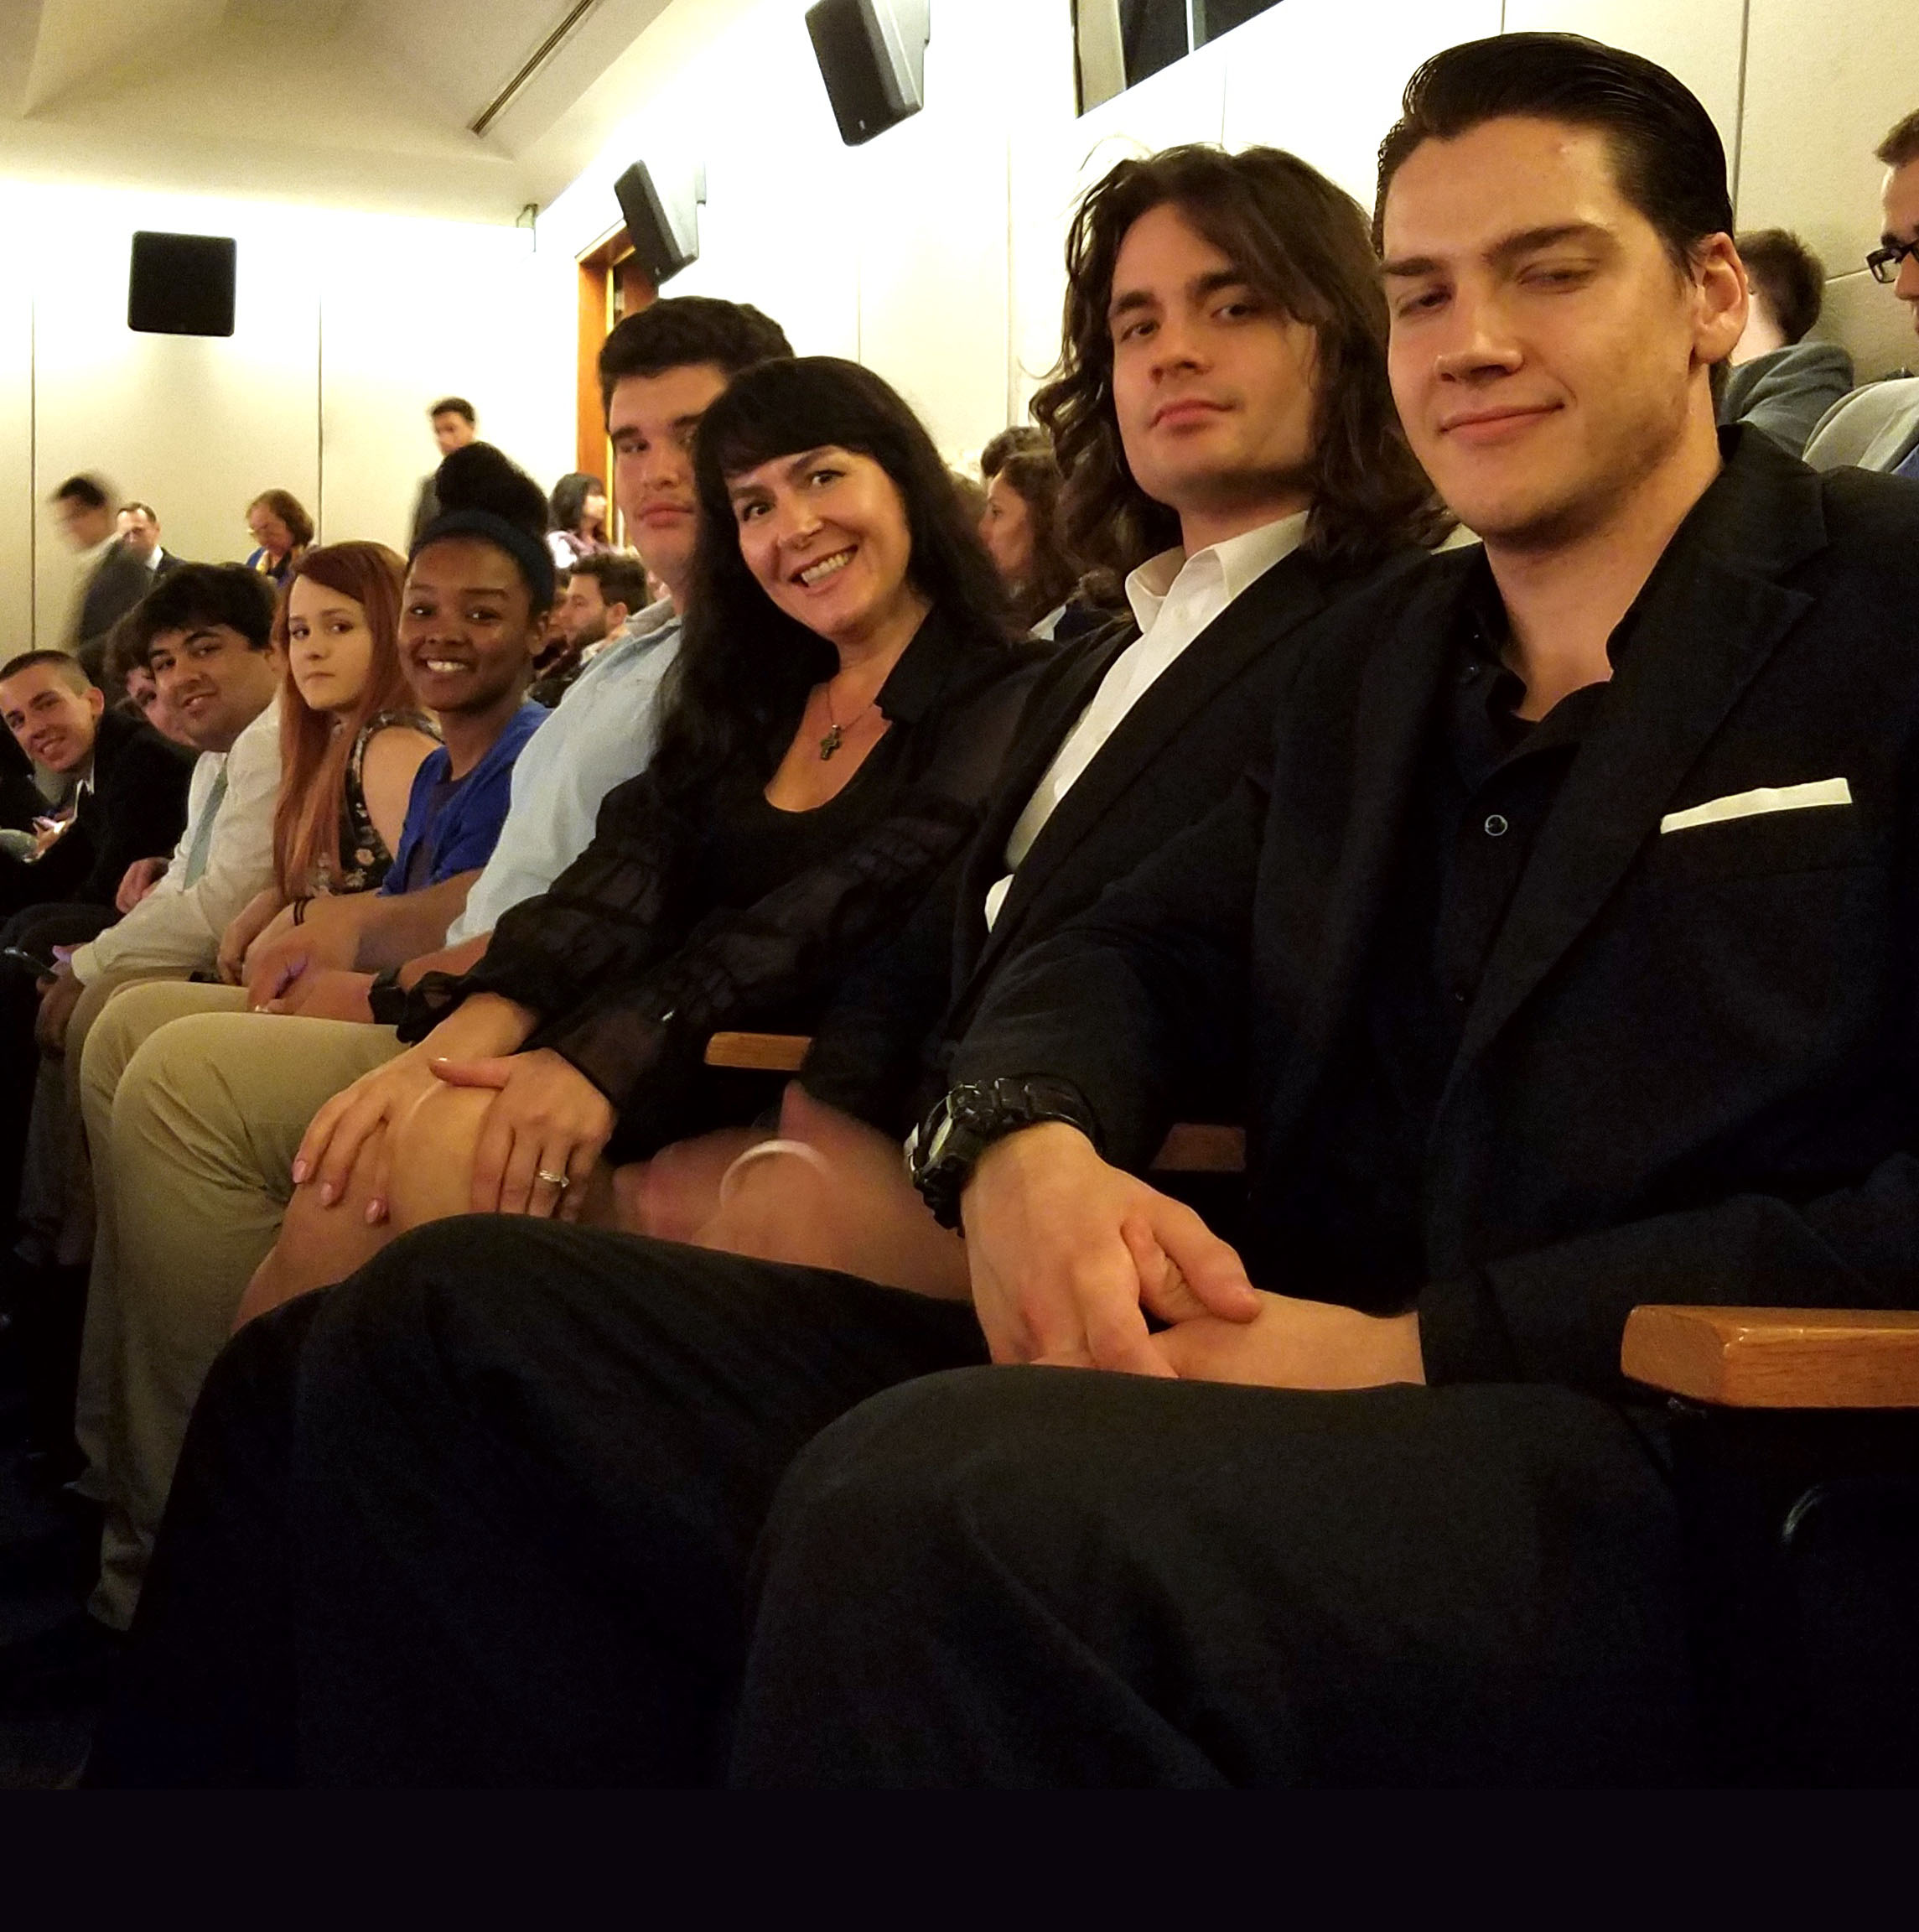 Students attend film screening at Russian Embassy